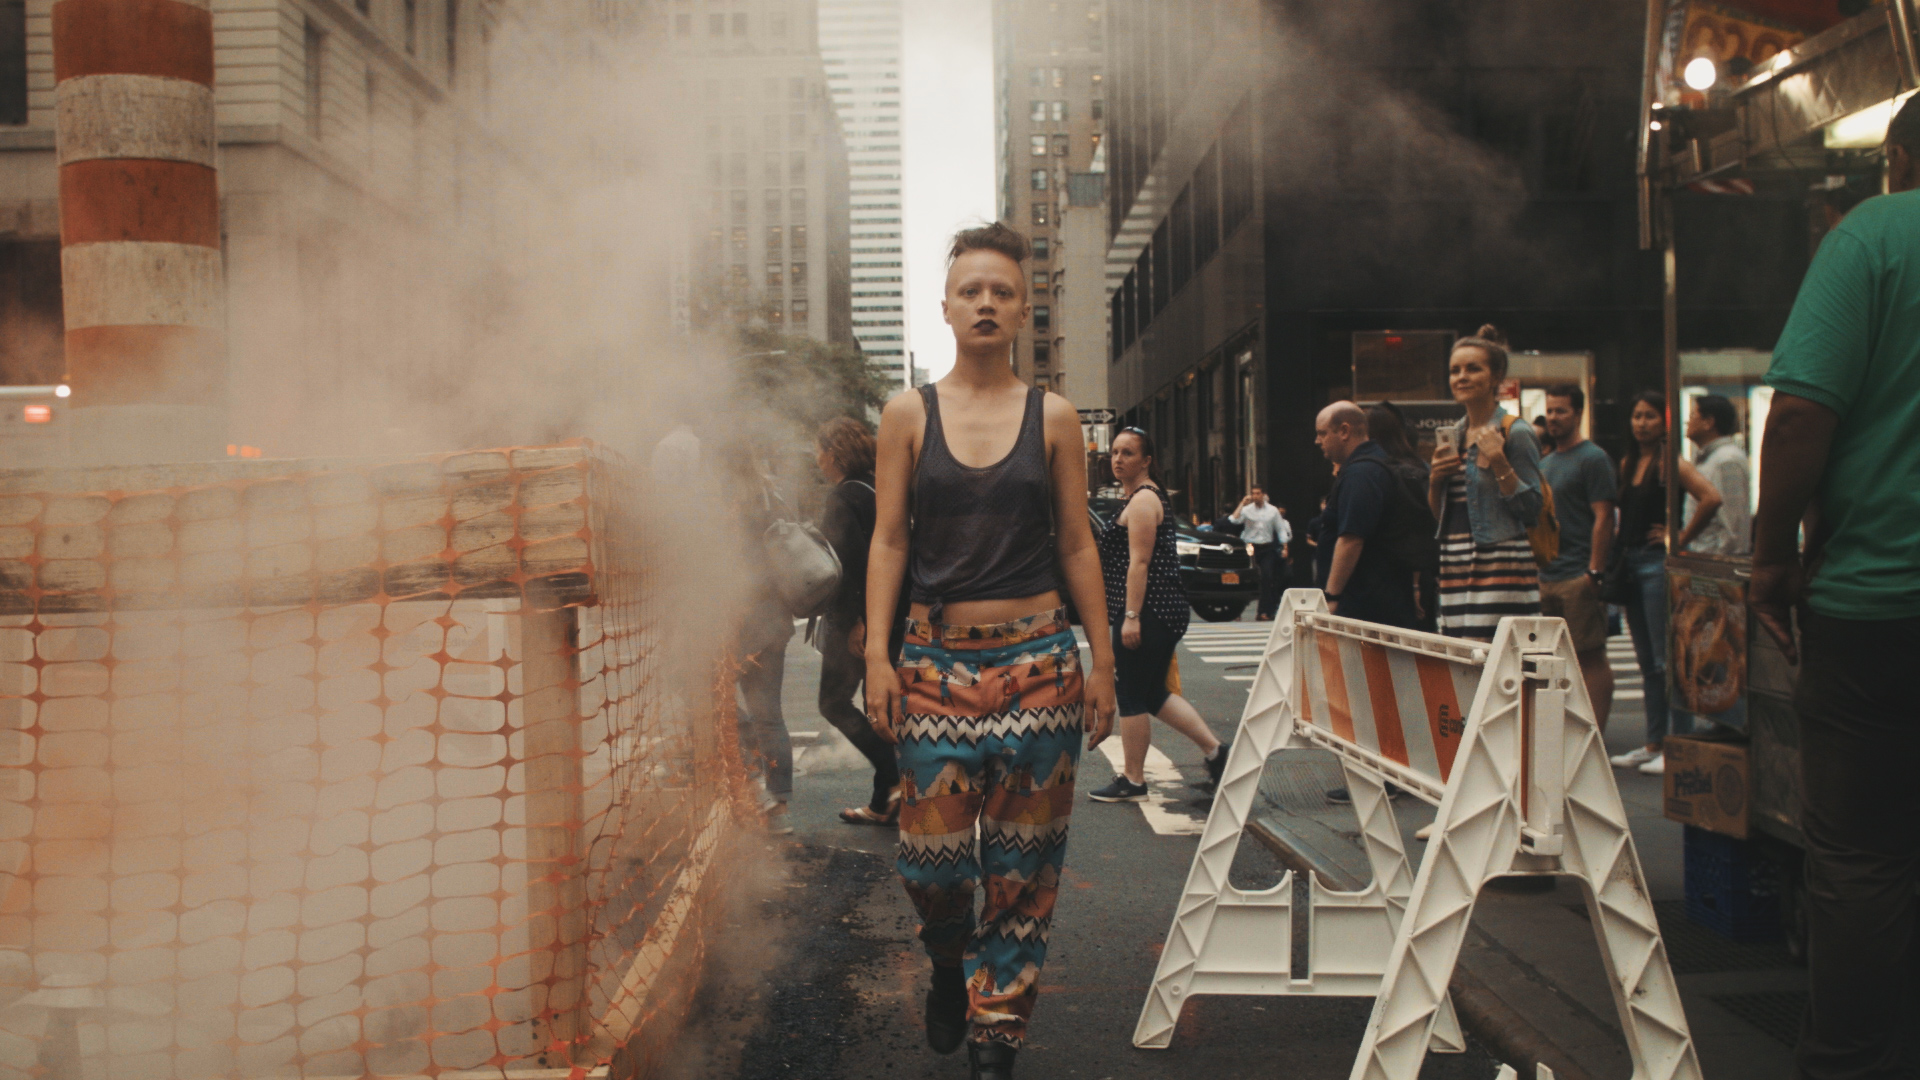 Still from the music video on location in NYC.